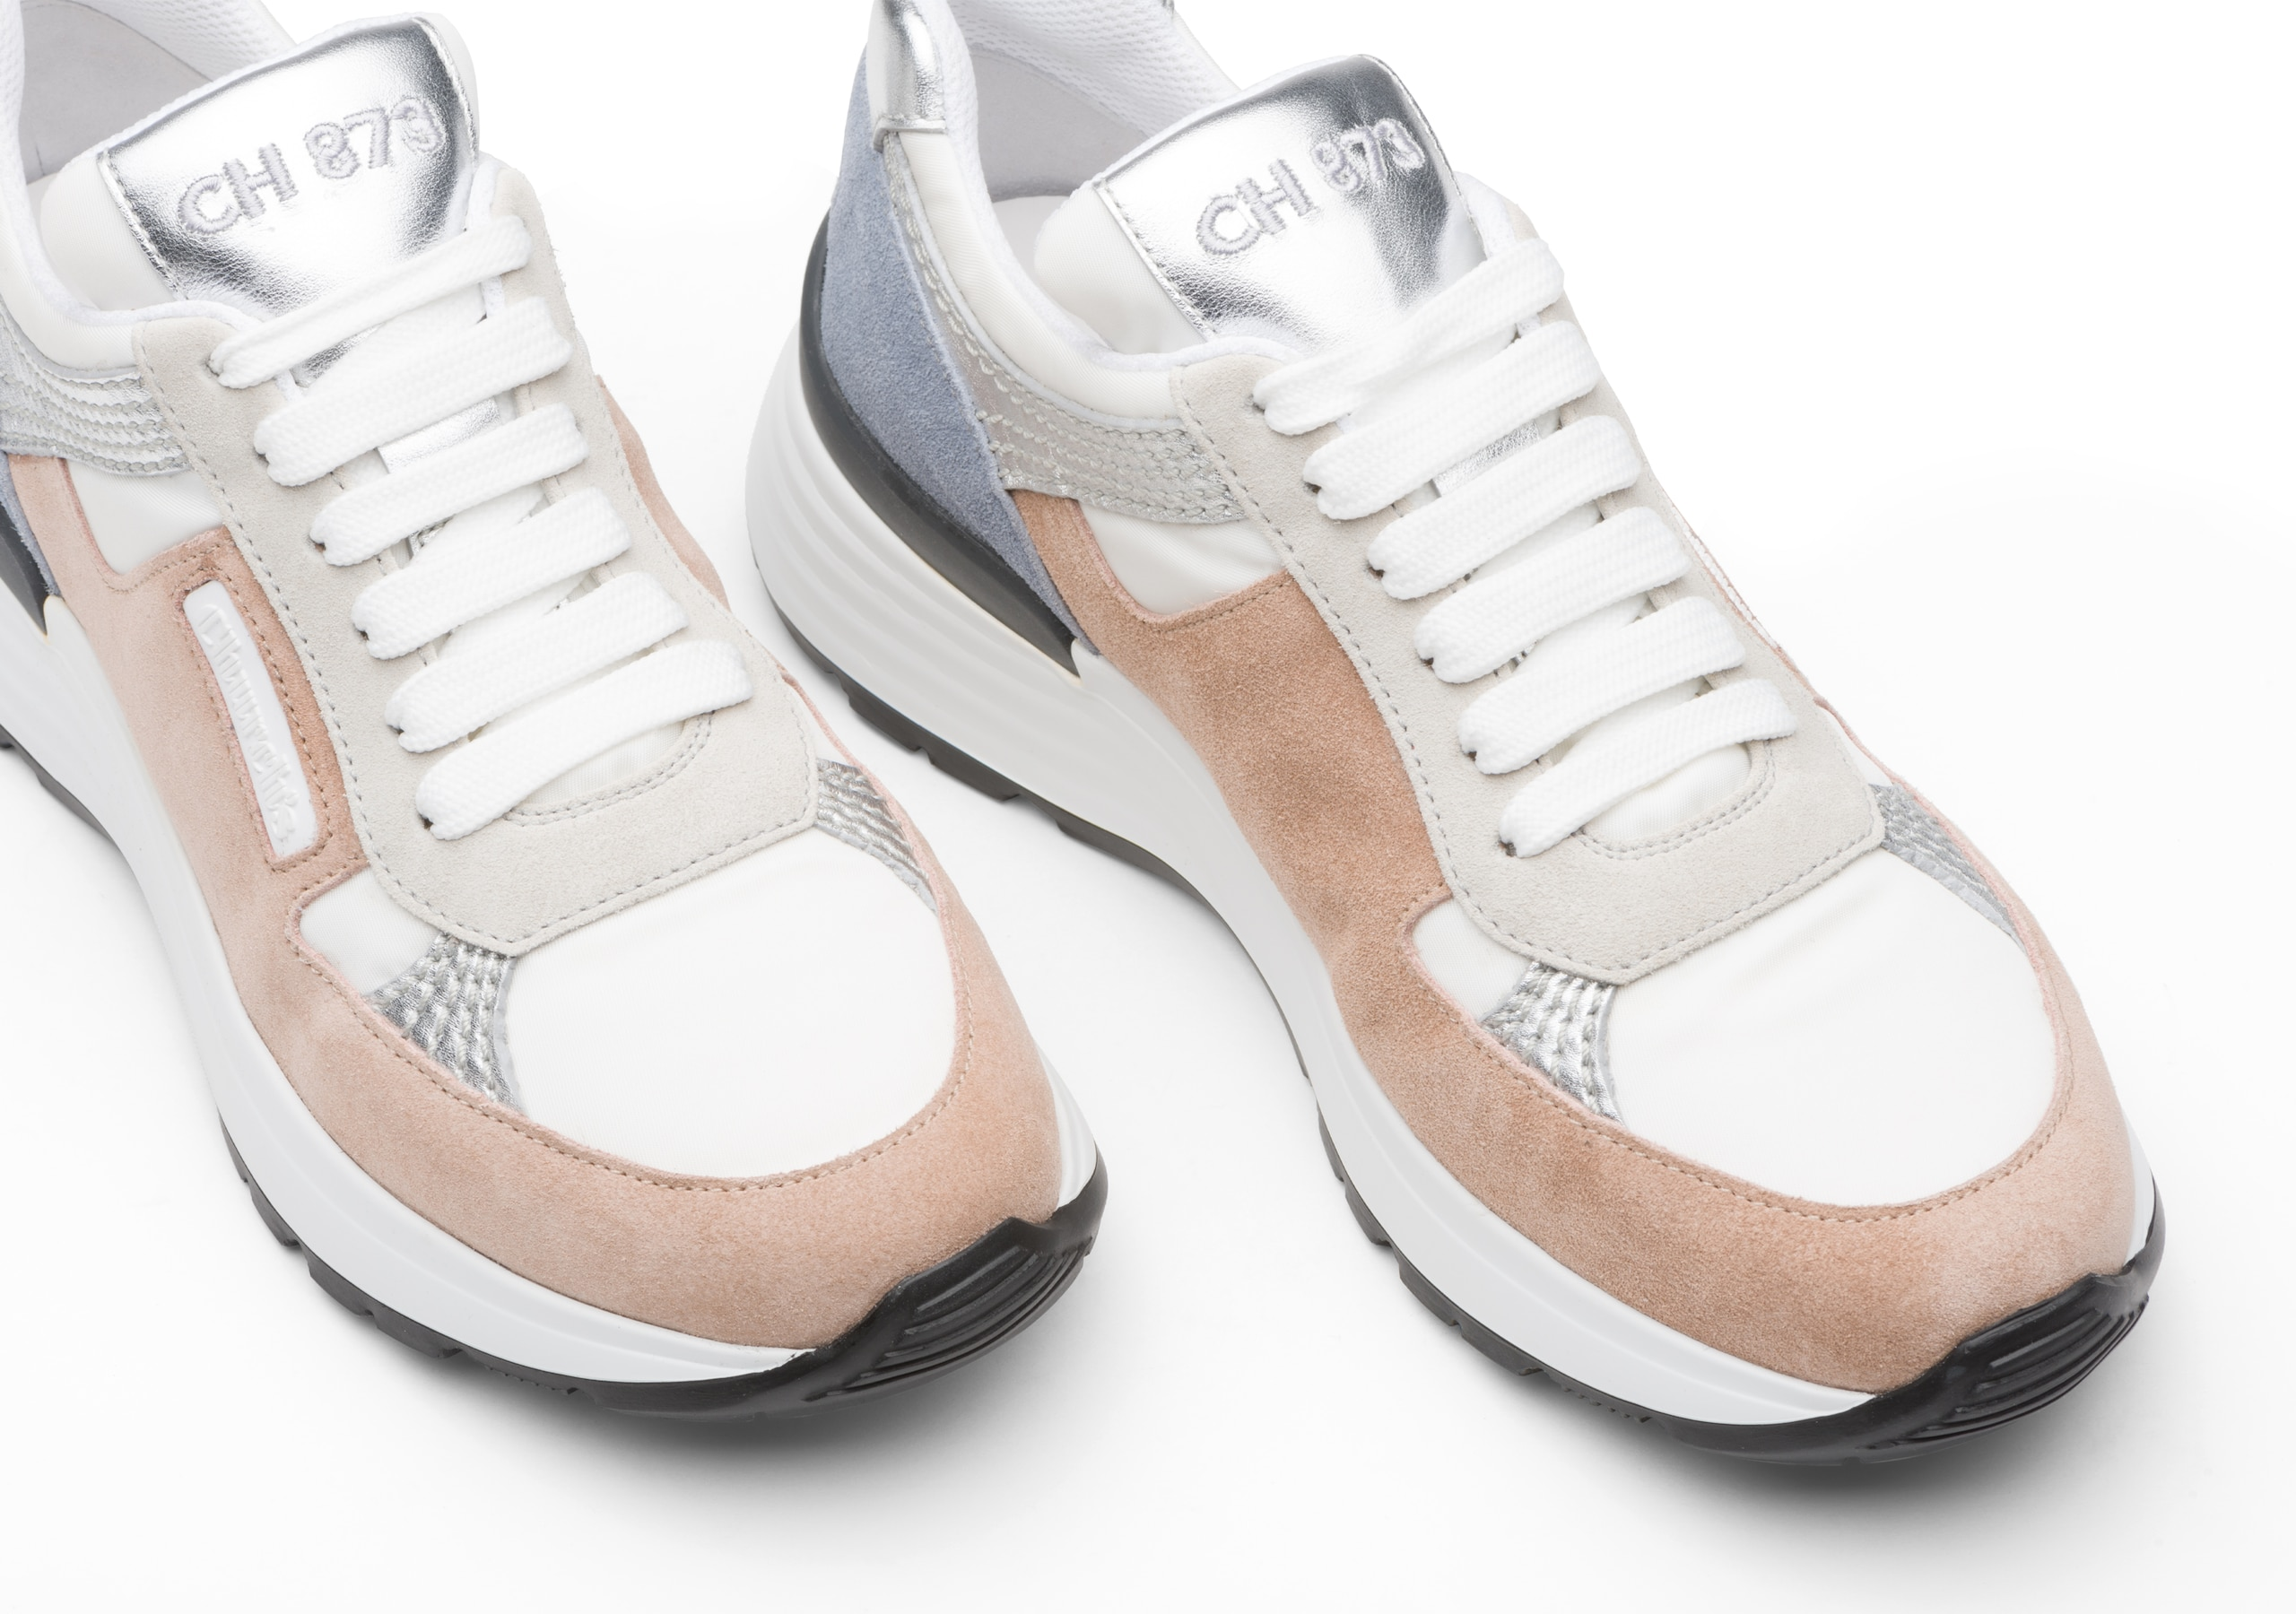 Ch873 Church's Suede Tech & Metallic Retro Sneaker Neutral